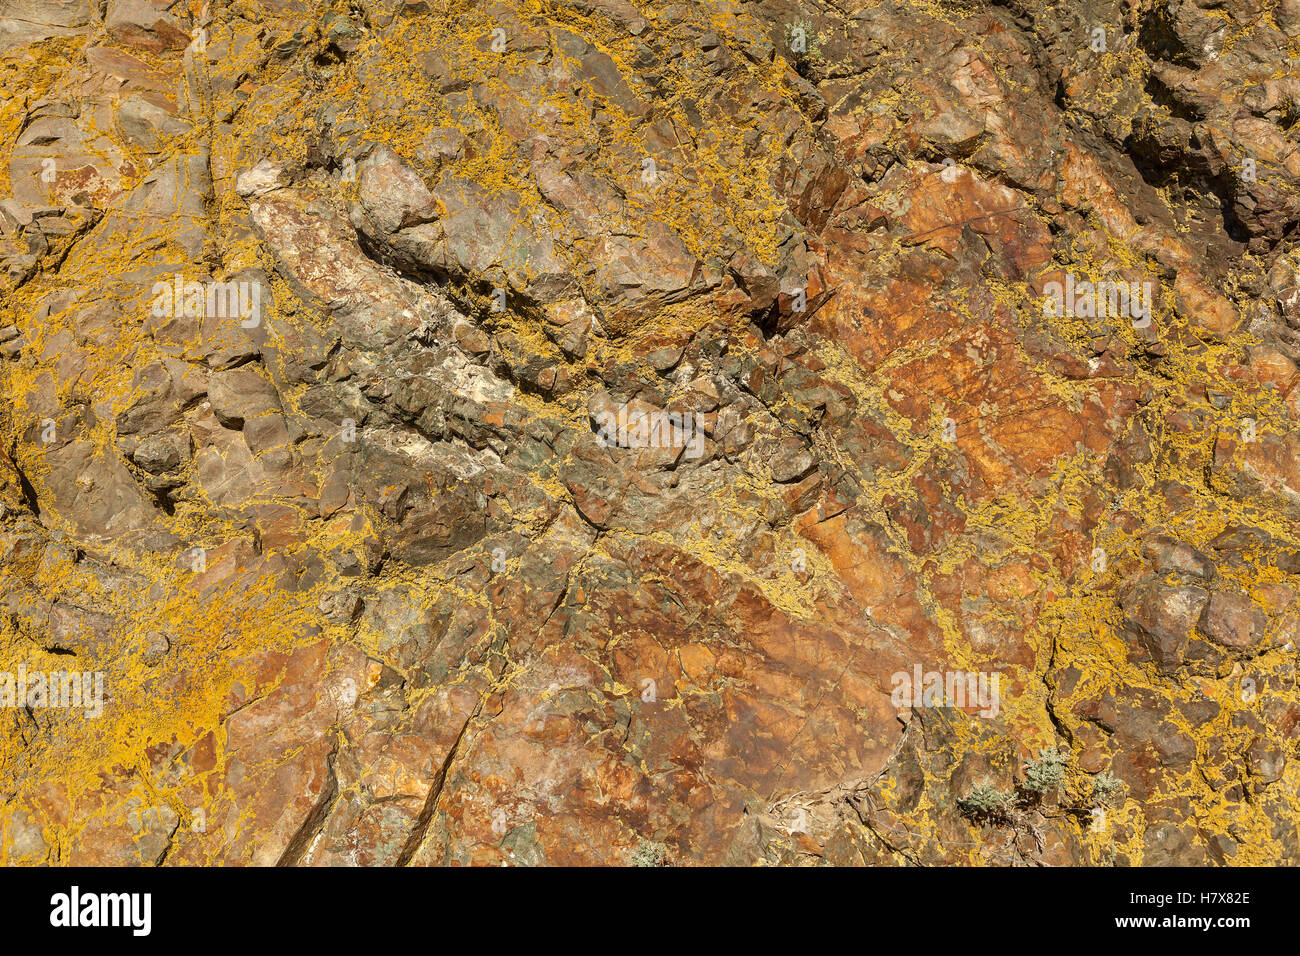 Marble surface.Close-up of natural marble stone sculpture texture. Stock Photo